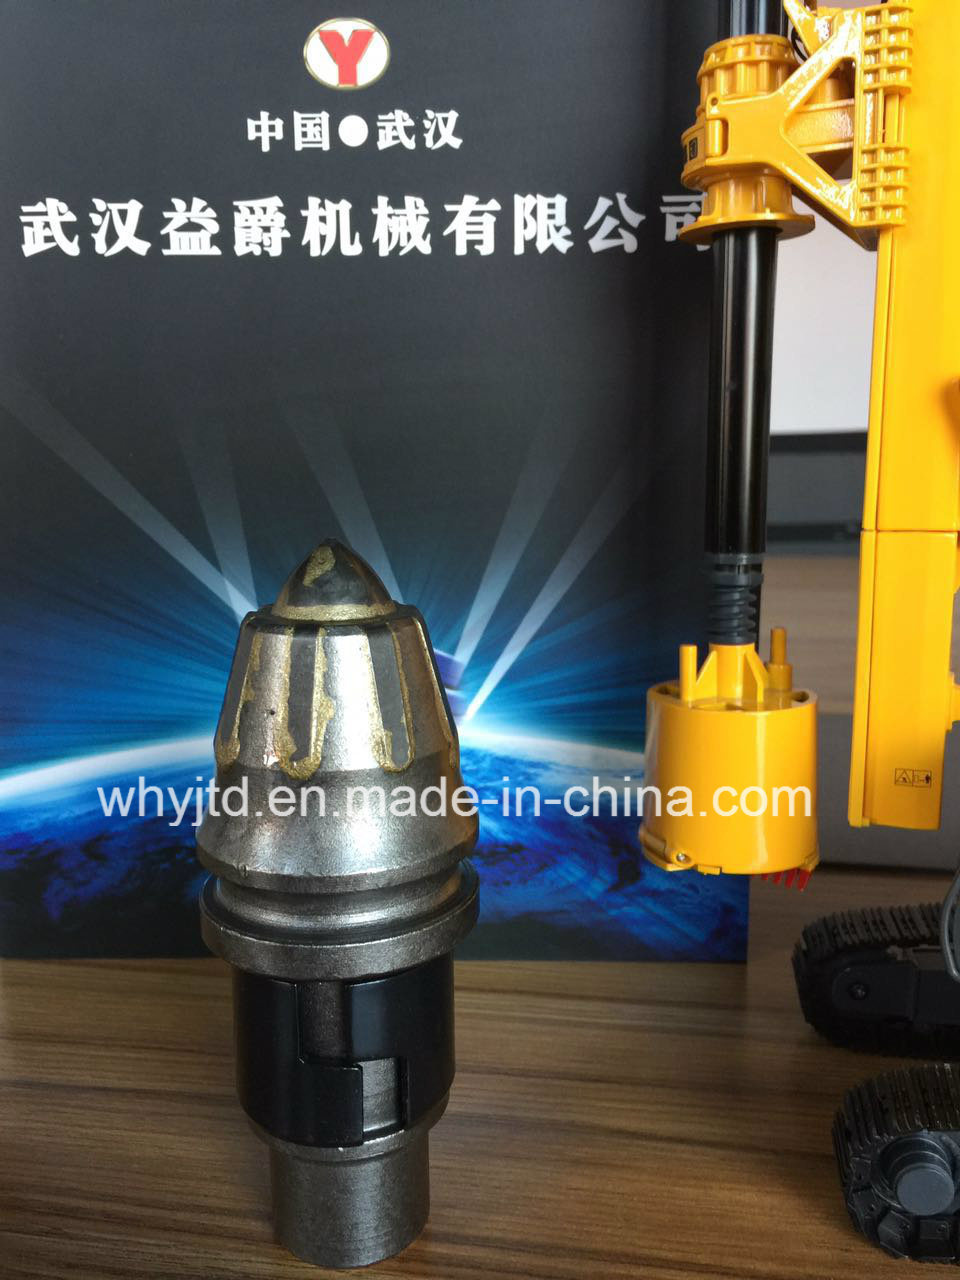 Yj-147at Cutting Bit for Drilling Bit